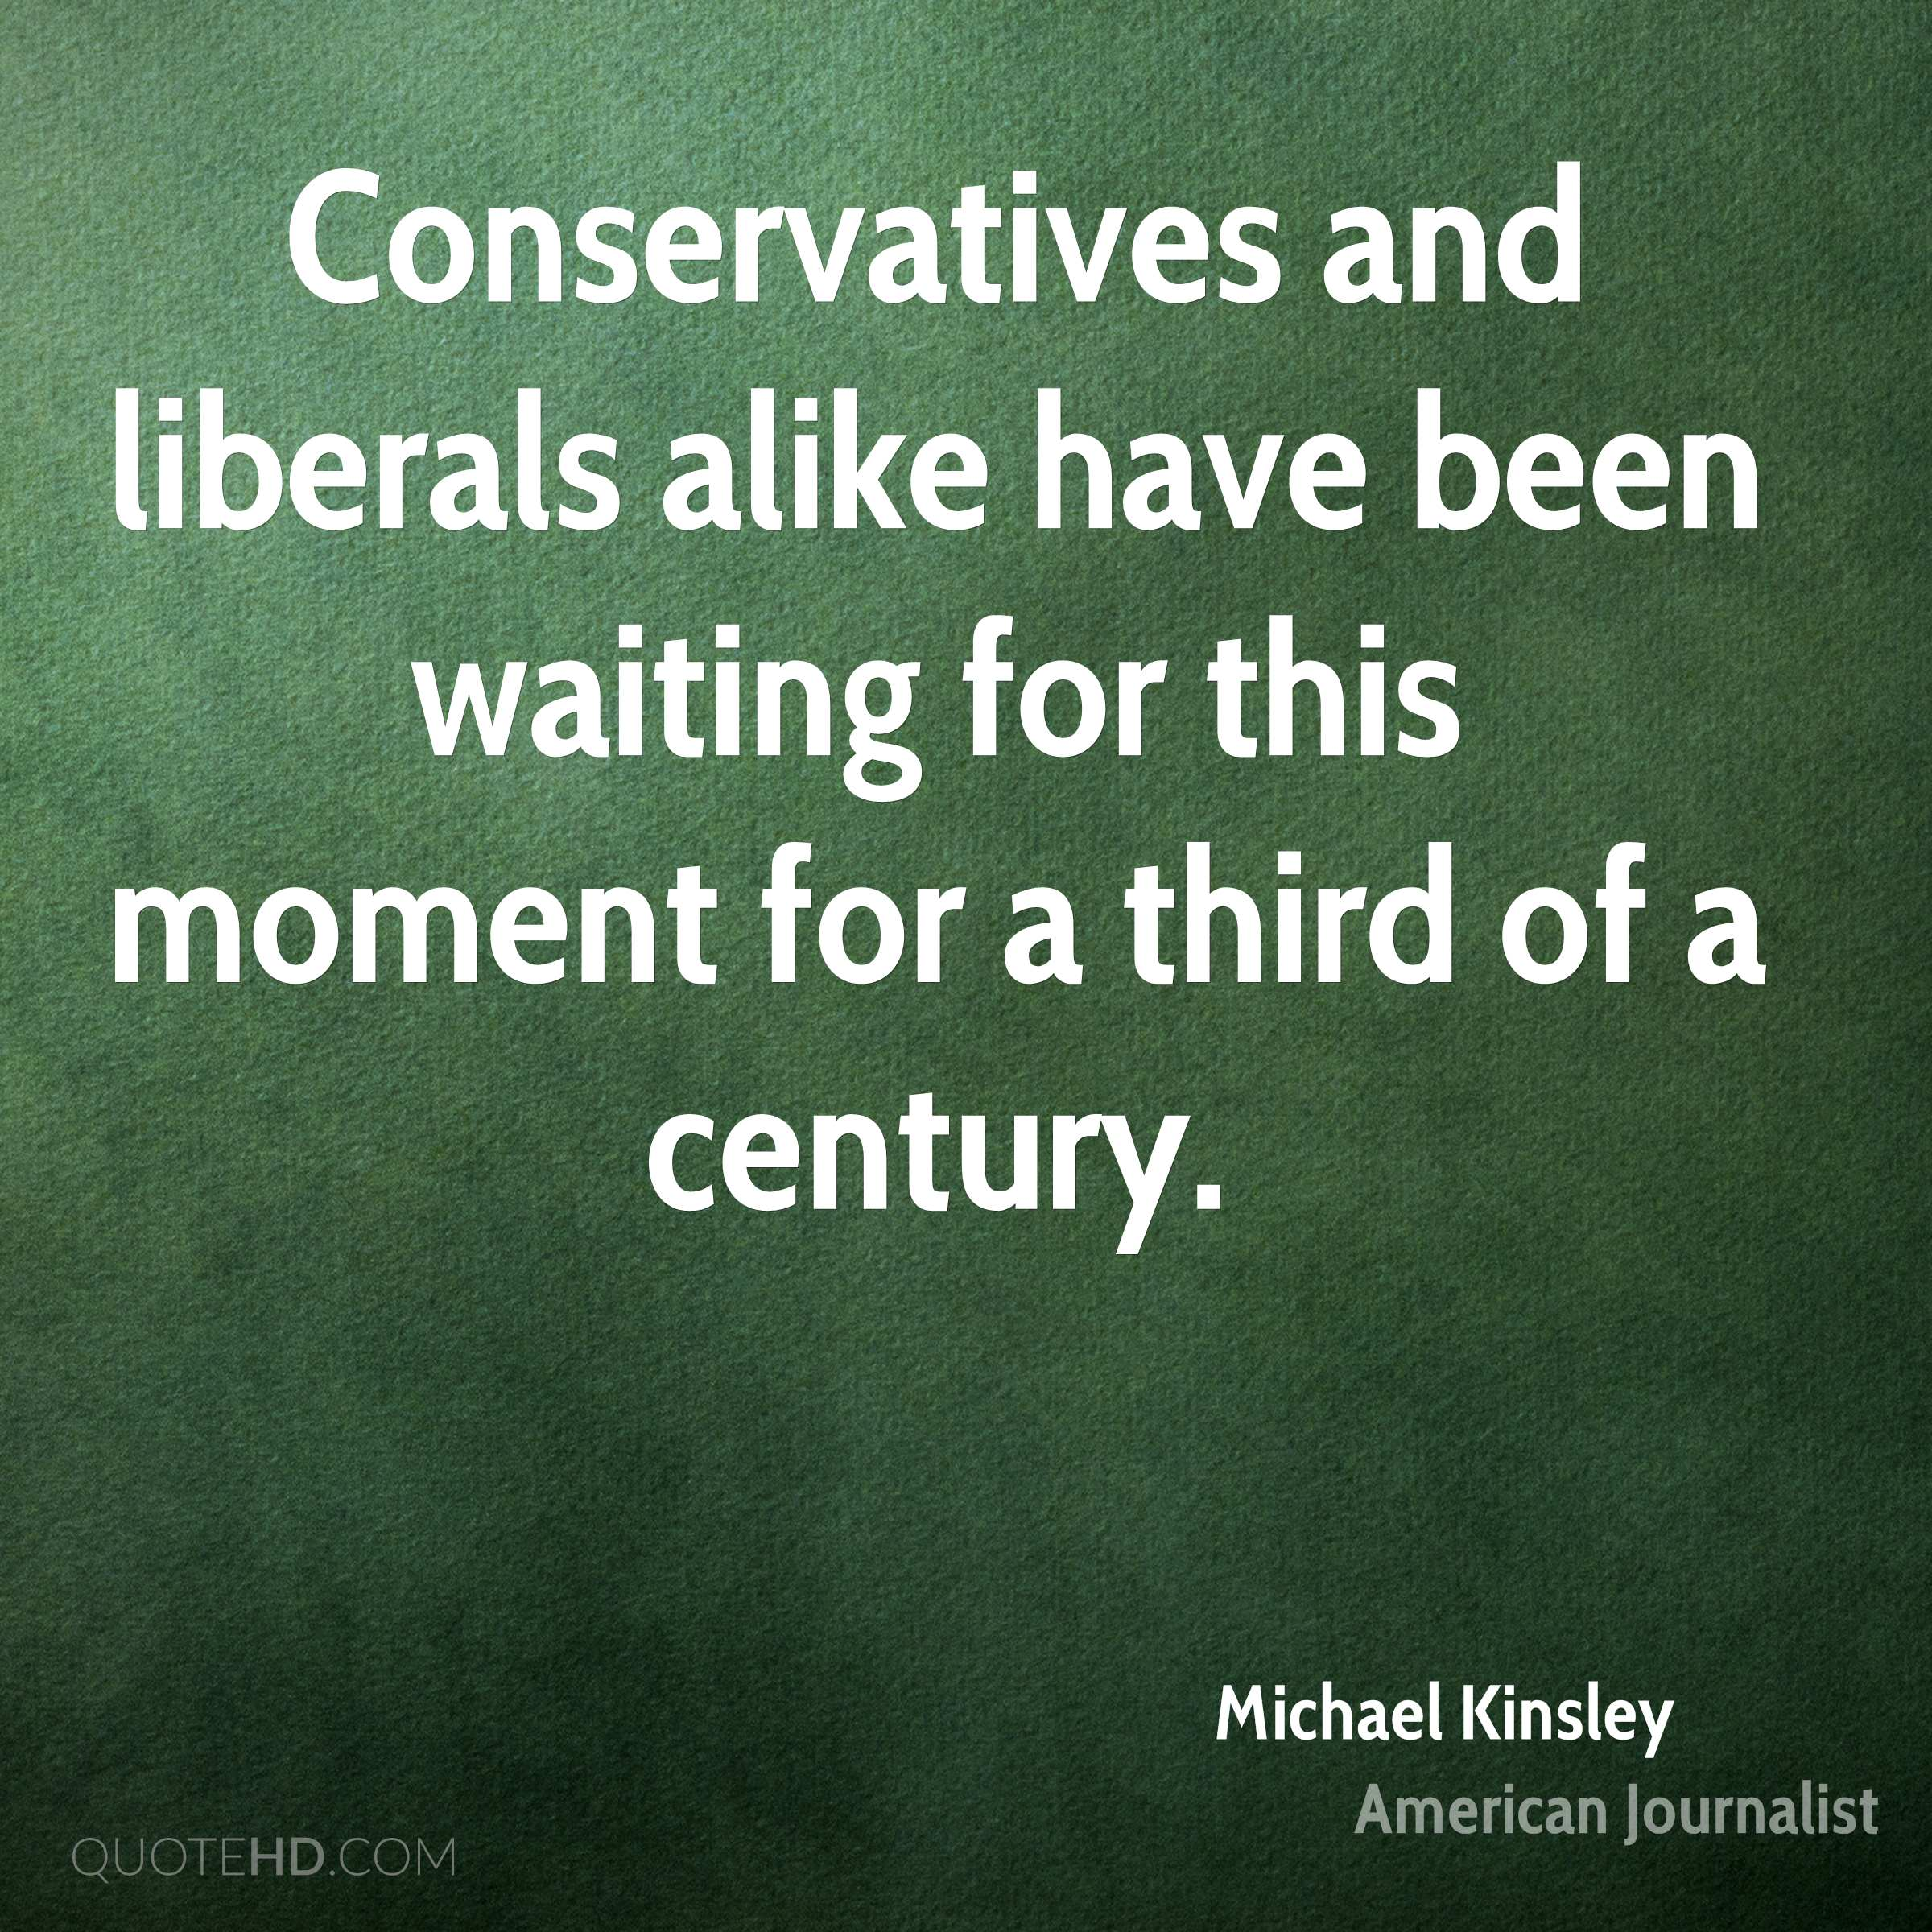 Conservatives and liberals alike have been waiting for this moment for a third of a century.